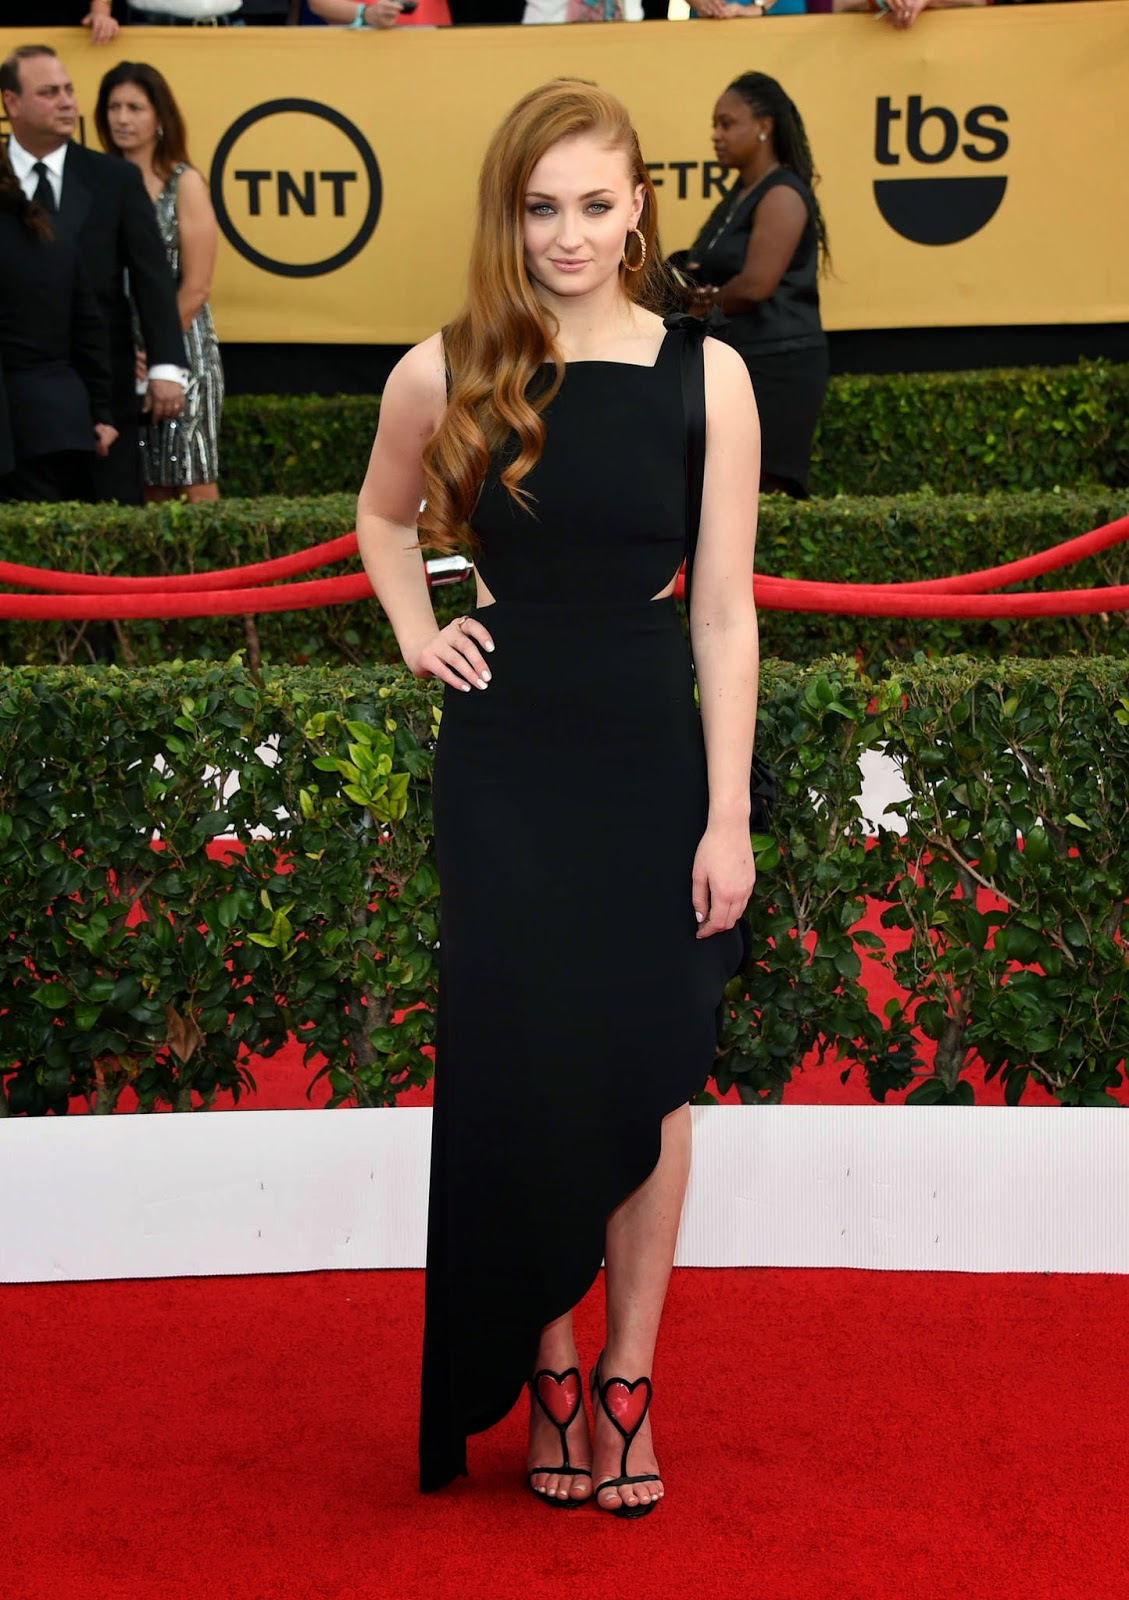 Sophie Turner in a black dress at the 21st Annual SAG Awards in LA